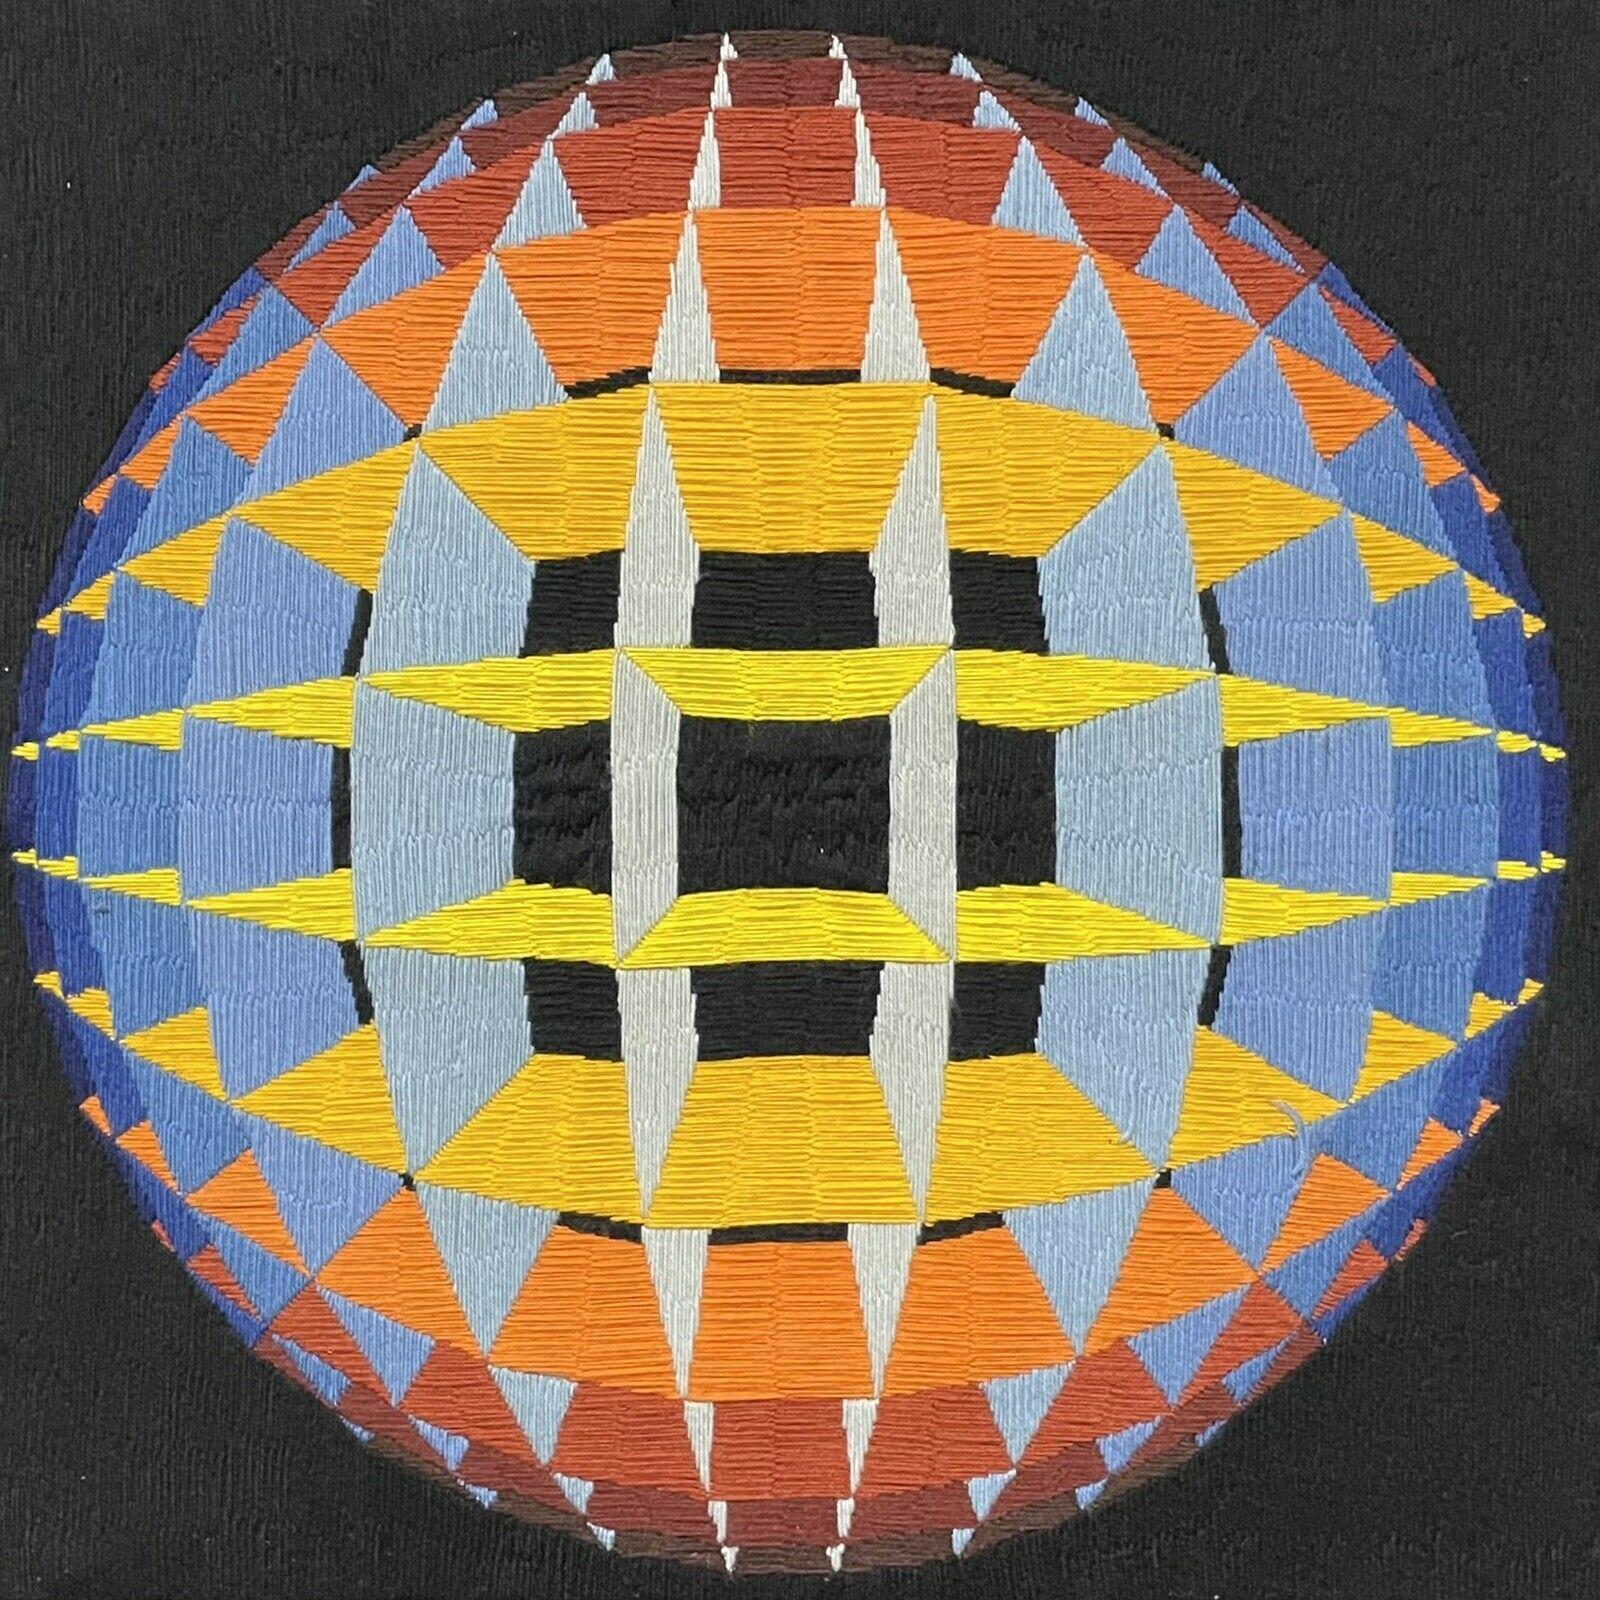 1980's FRENCH OP ART GEOMETRIC SPATIAL ABSTRACT ORIGINAL WOOLWORK - VASARELY